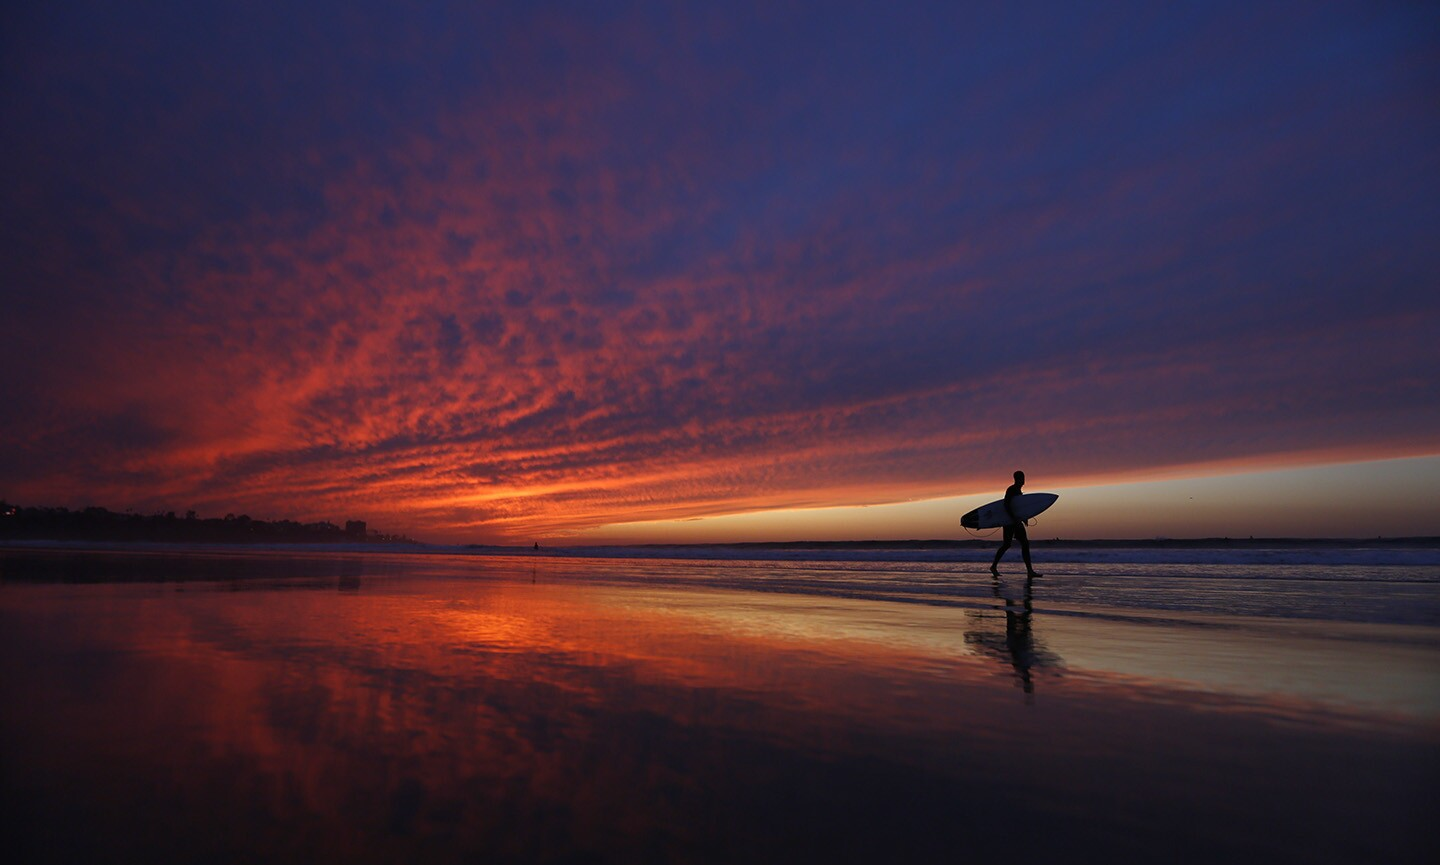 A surfer walks out of the water at La Jolla Shores on Thursday, Nov. 30, 2017. The Stance ISA World Adaptive Surfing Championship which runs through Sunday at the beach. (Photo by K.C. Alfred/The San Diego Union-Tribune)